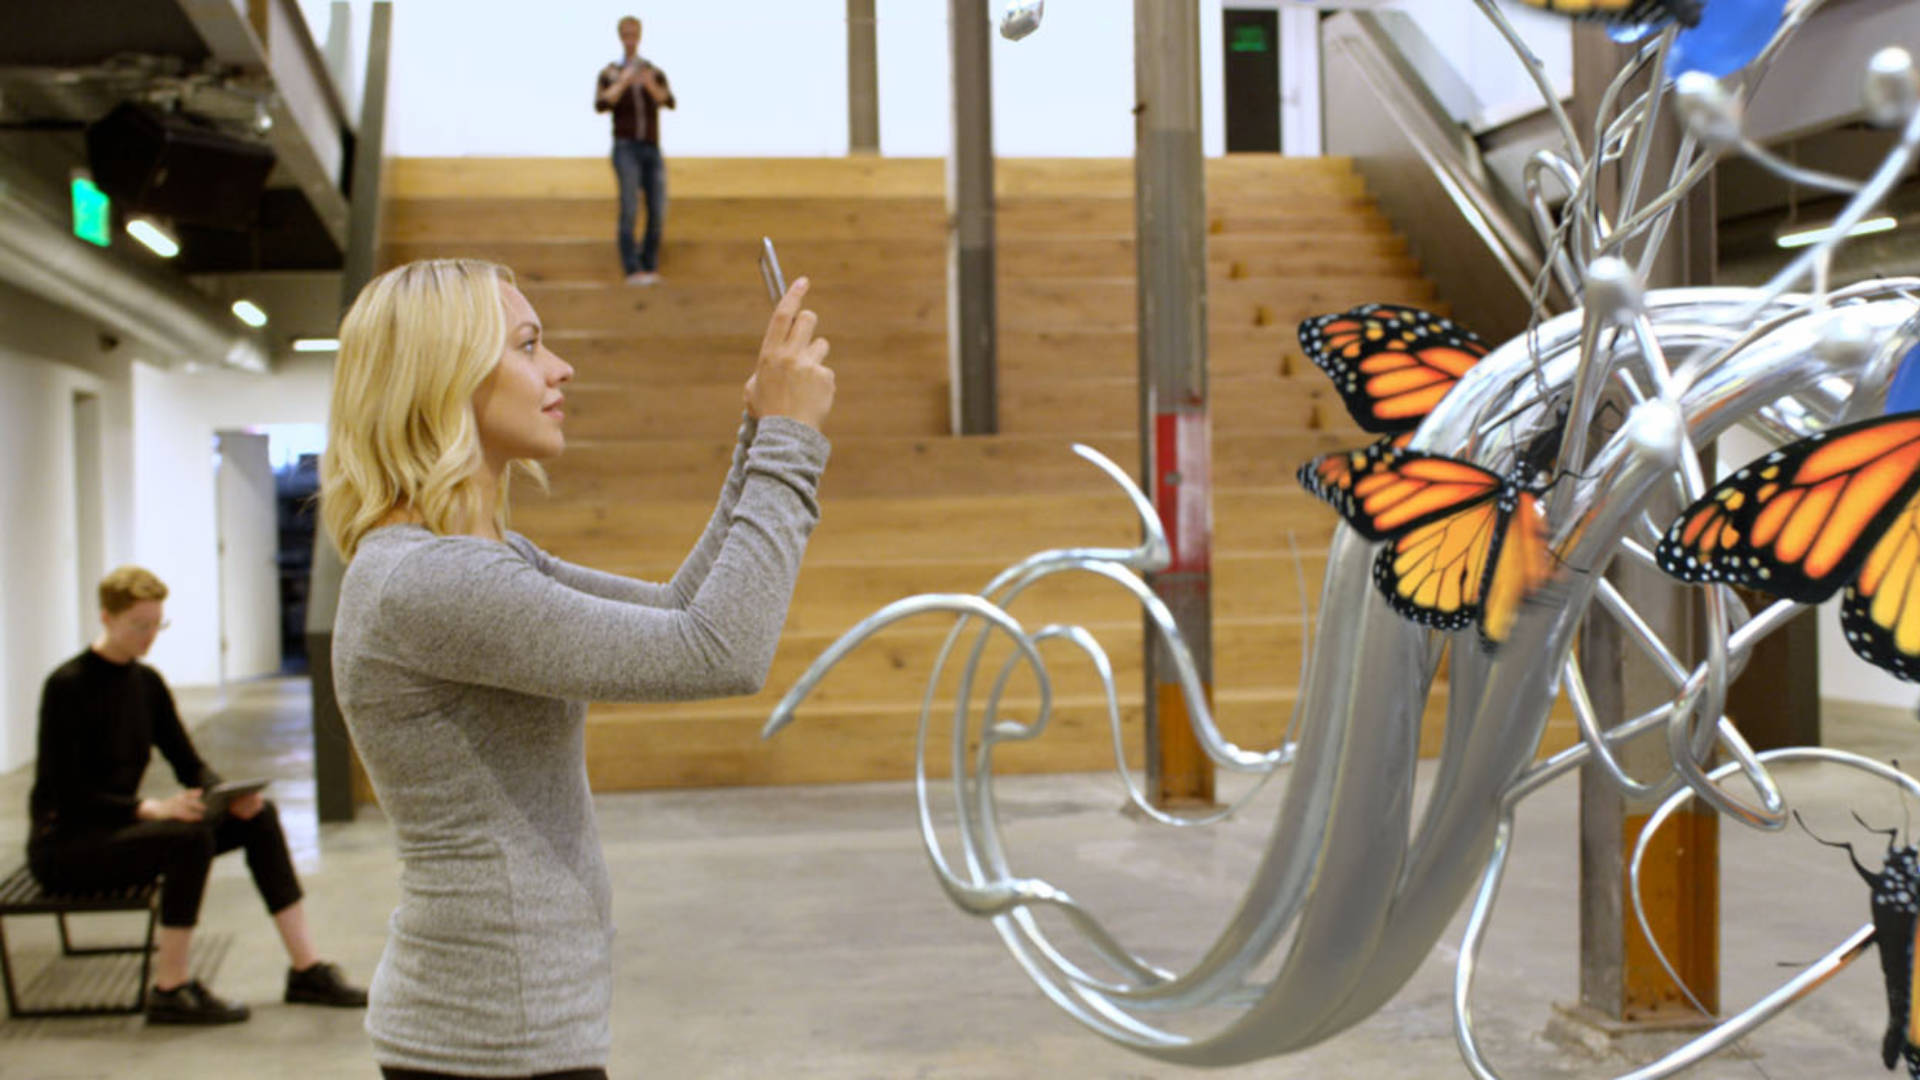 Adobe Unveils Project Aero Aimed Towards Simplified AR Content Creation blog.adobe.com vr porn blog virtual reality